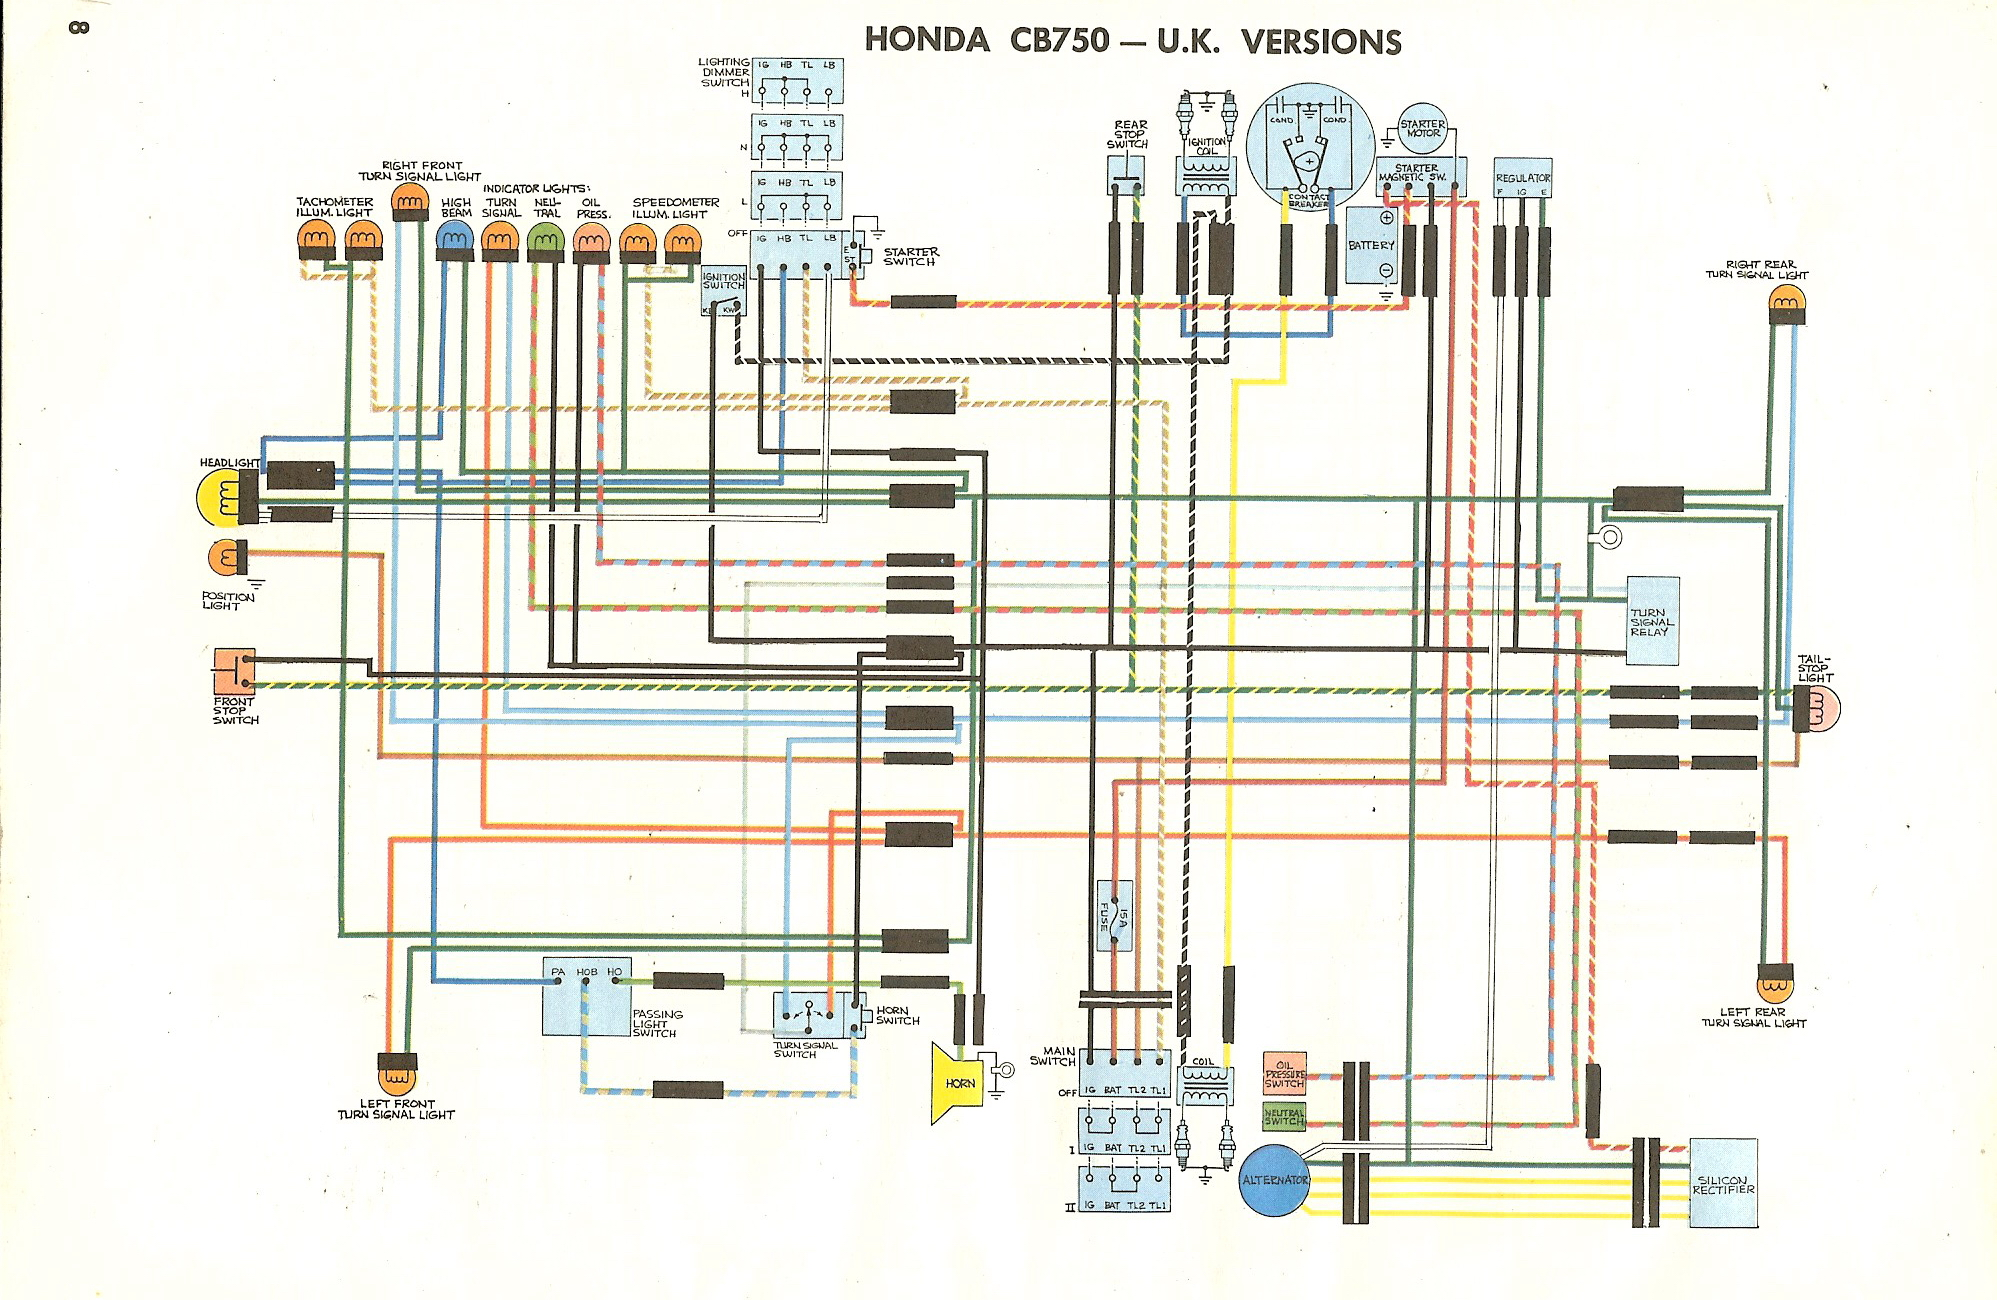 🏆 [DIAGRAM in Pictures Database] 1973 Honda Cb550 Wiring Diagram Just  Download or Read Wiring Diagram - DIAGRAM.ONYXUM.COMComplete Diagram Picture Database - Onyxum.com